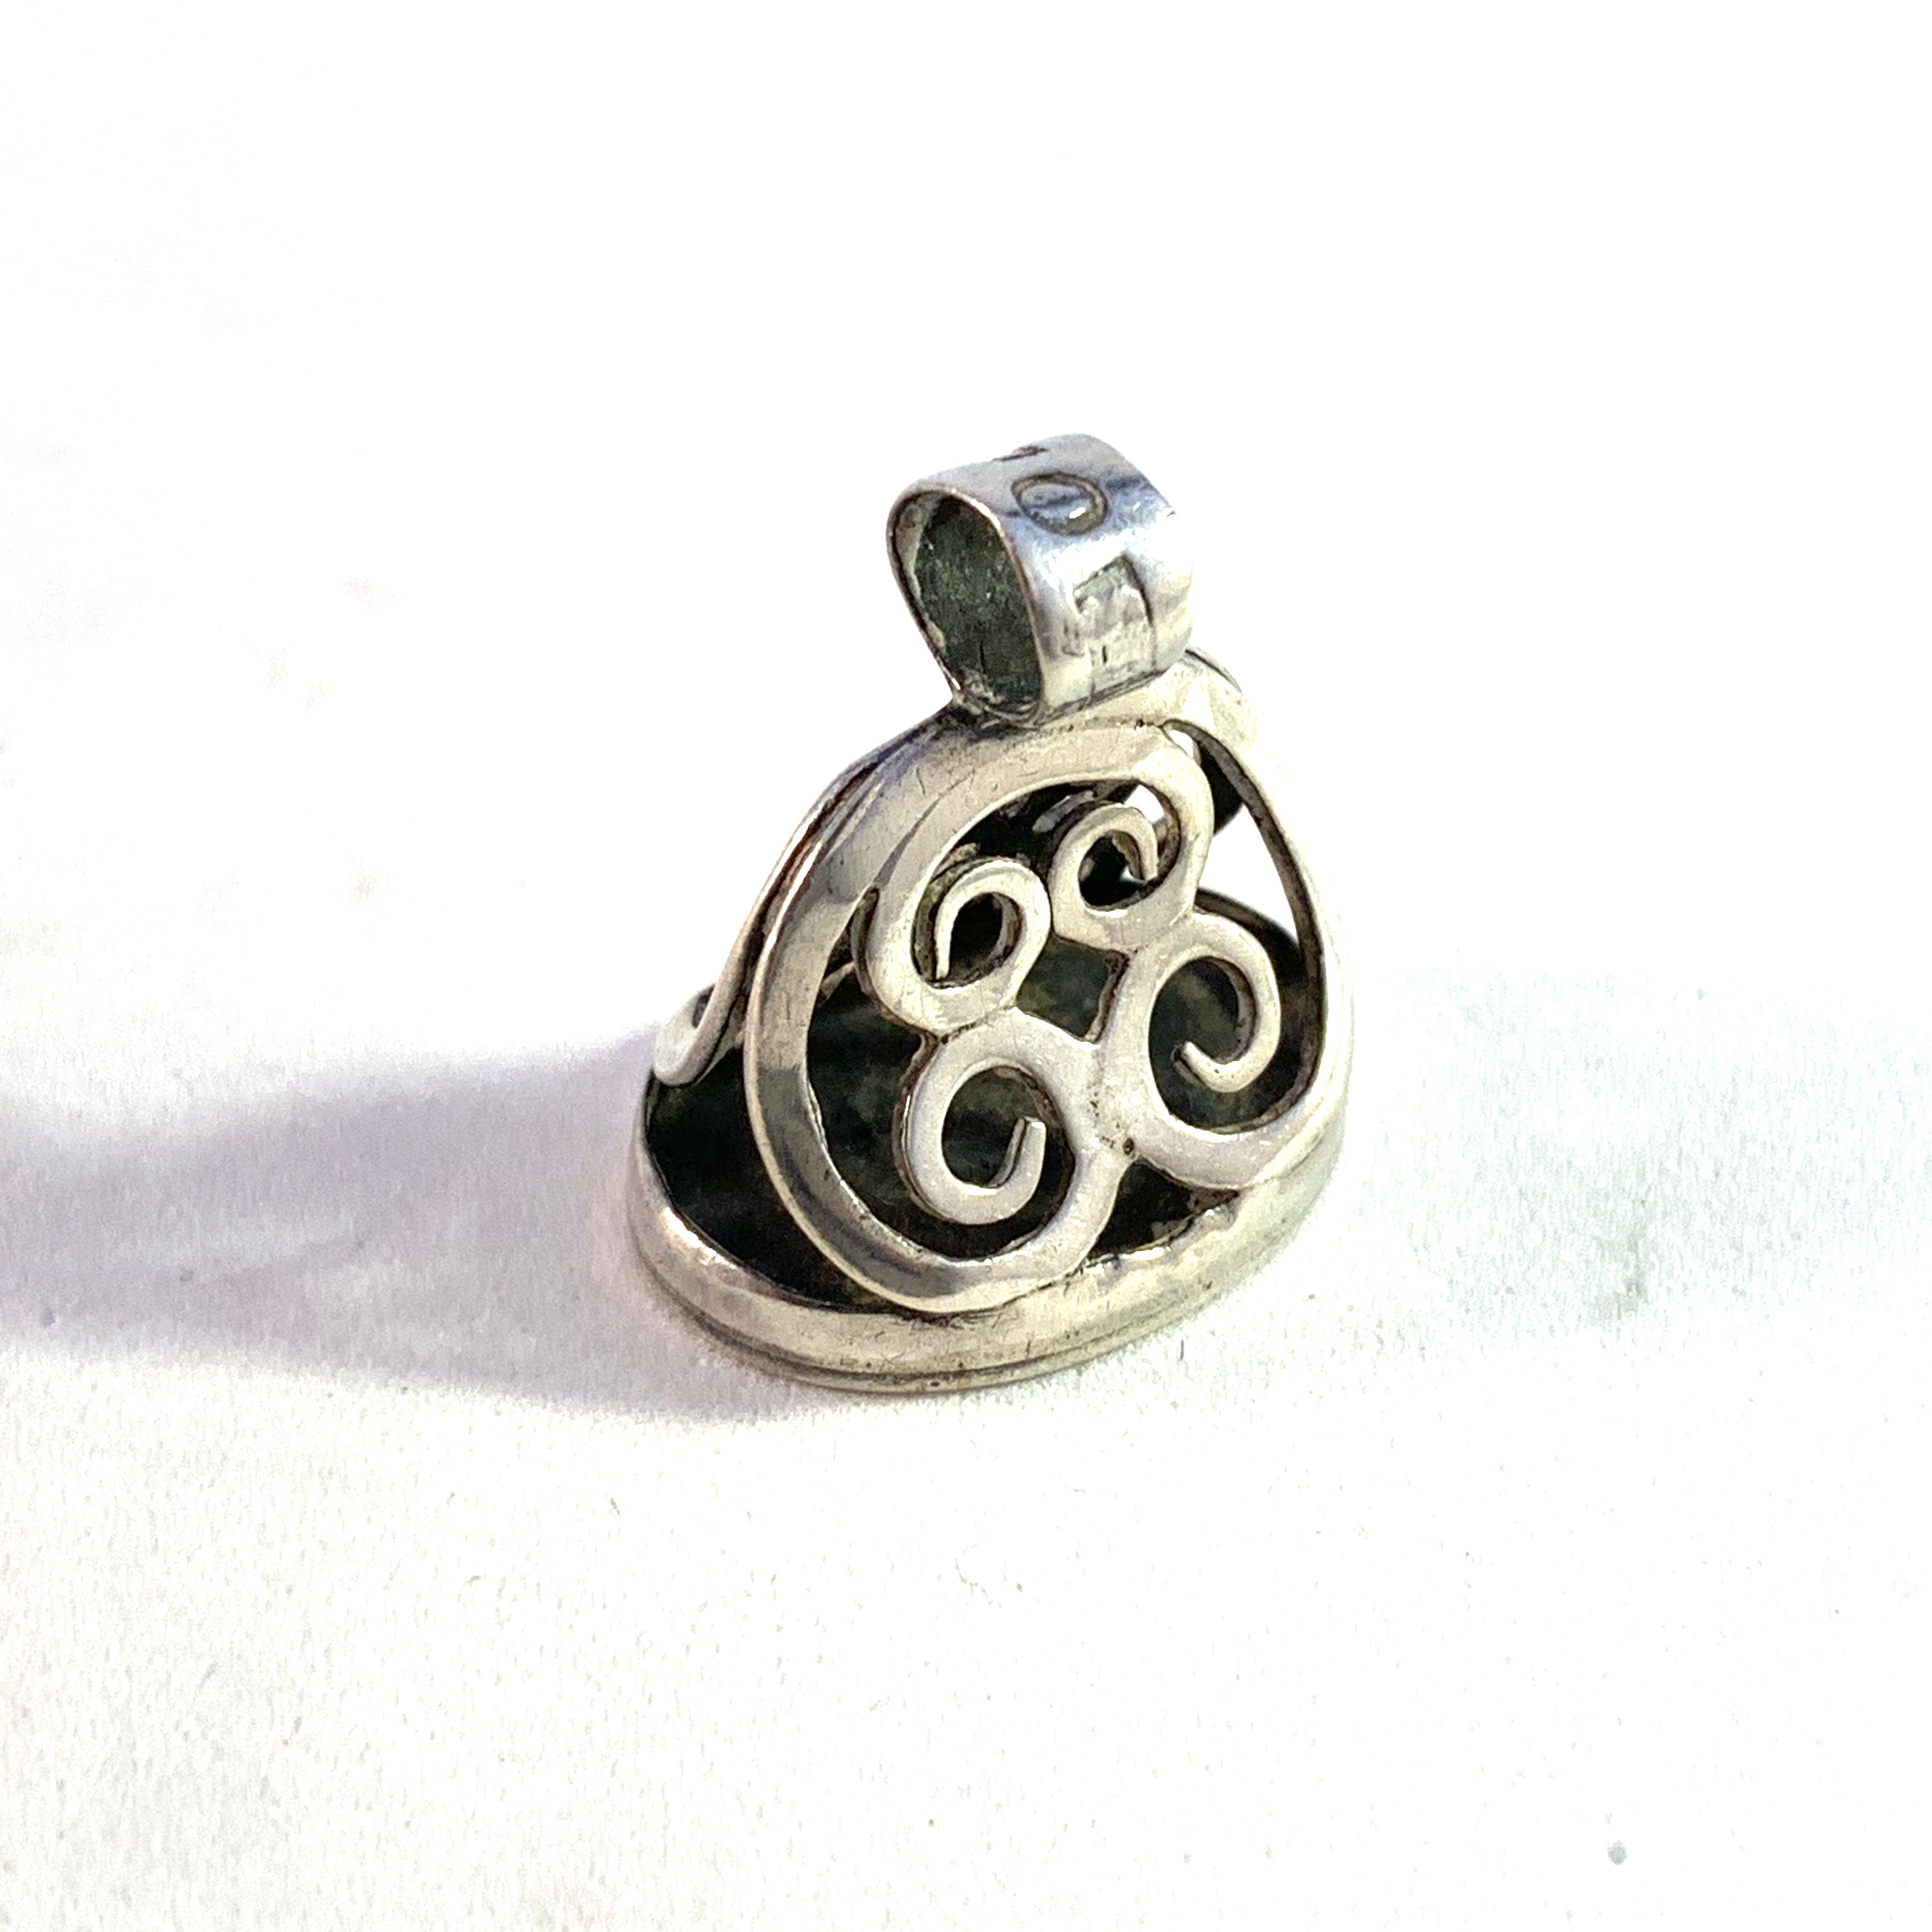 A Westberg, Sweden 1848 Early Victorian Solid Silver Fob Seal Pendant